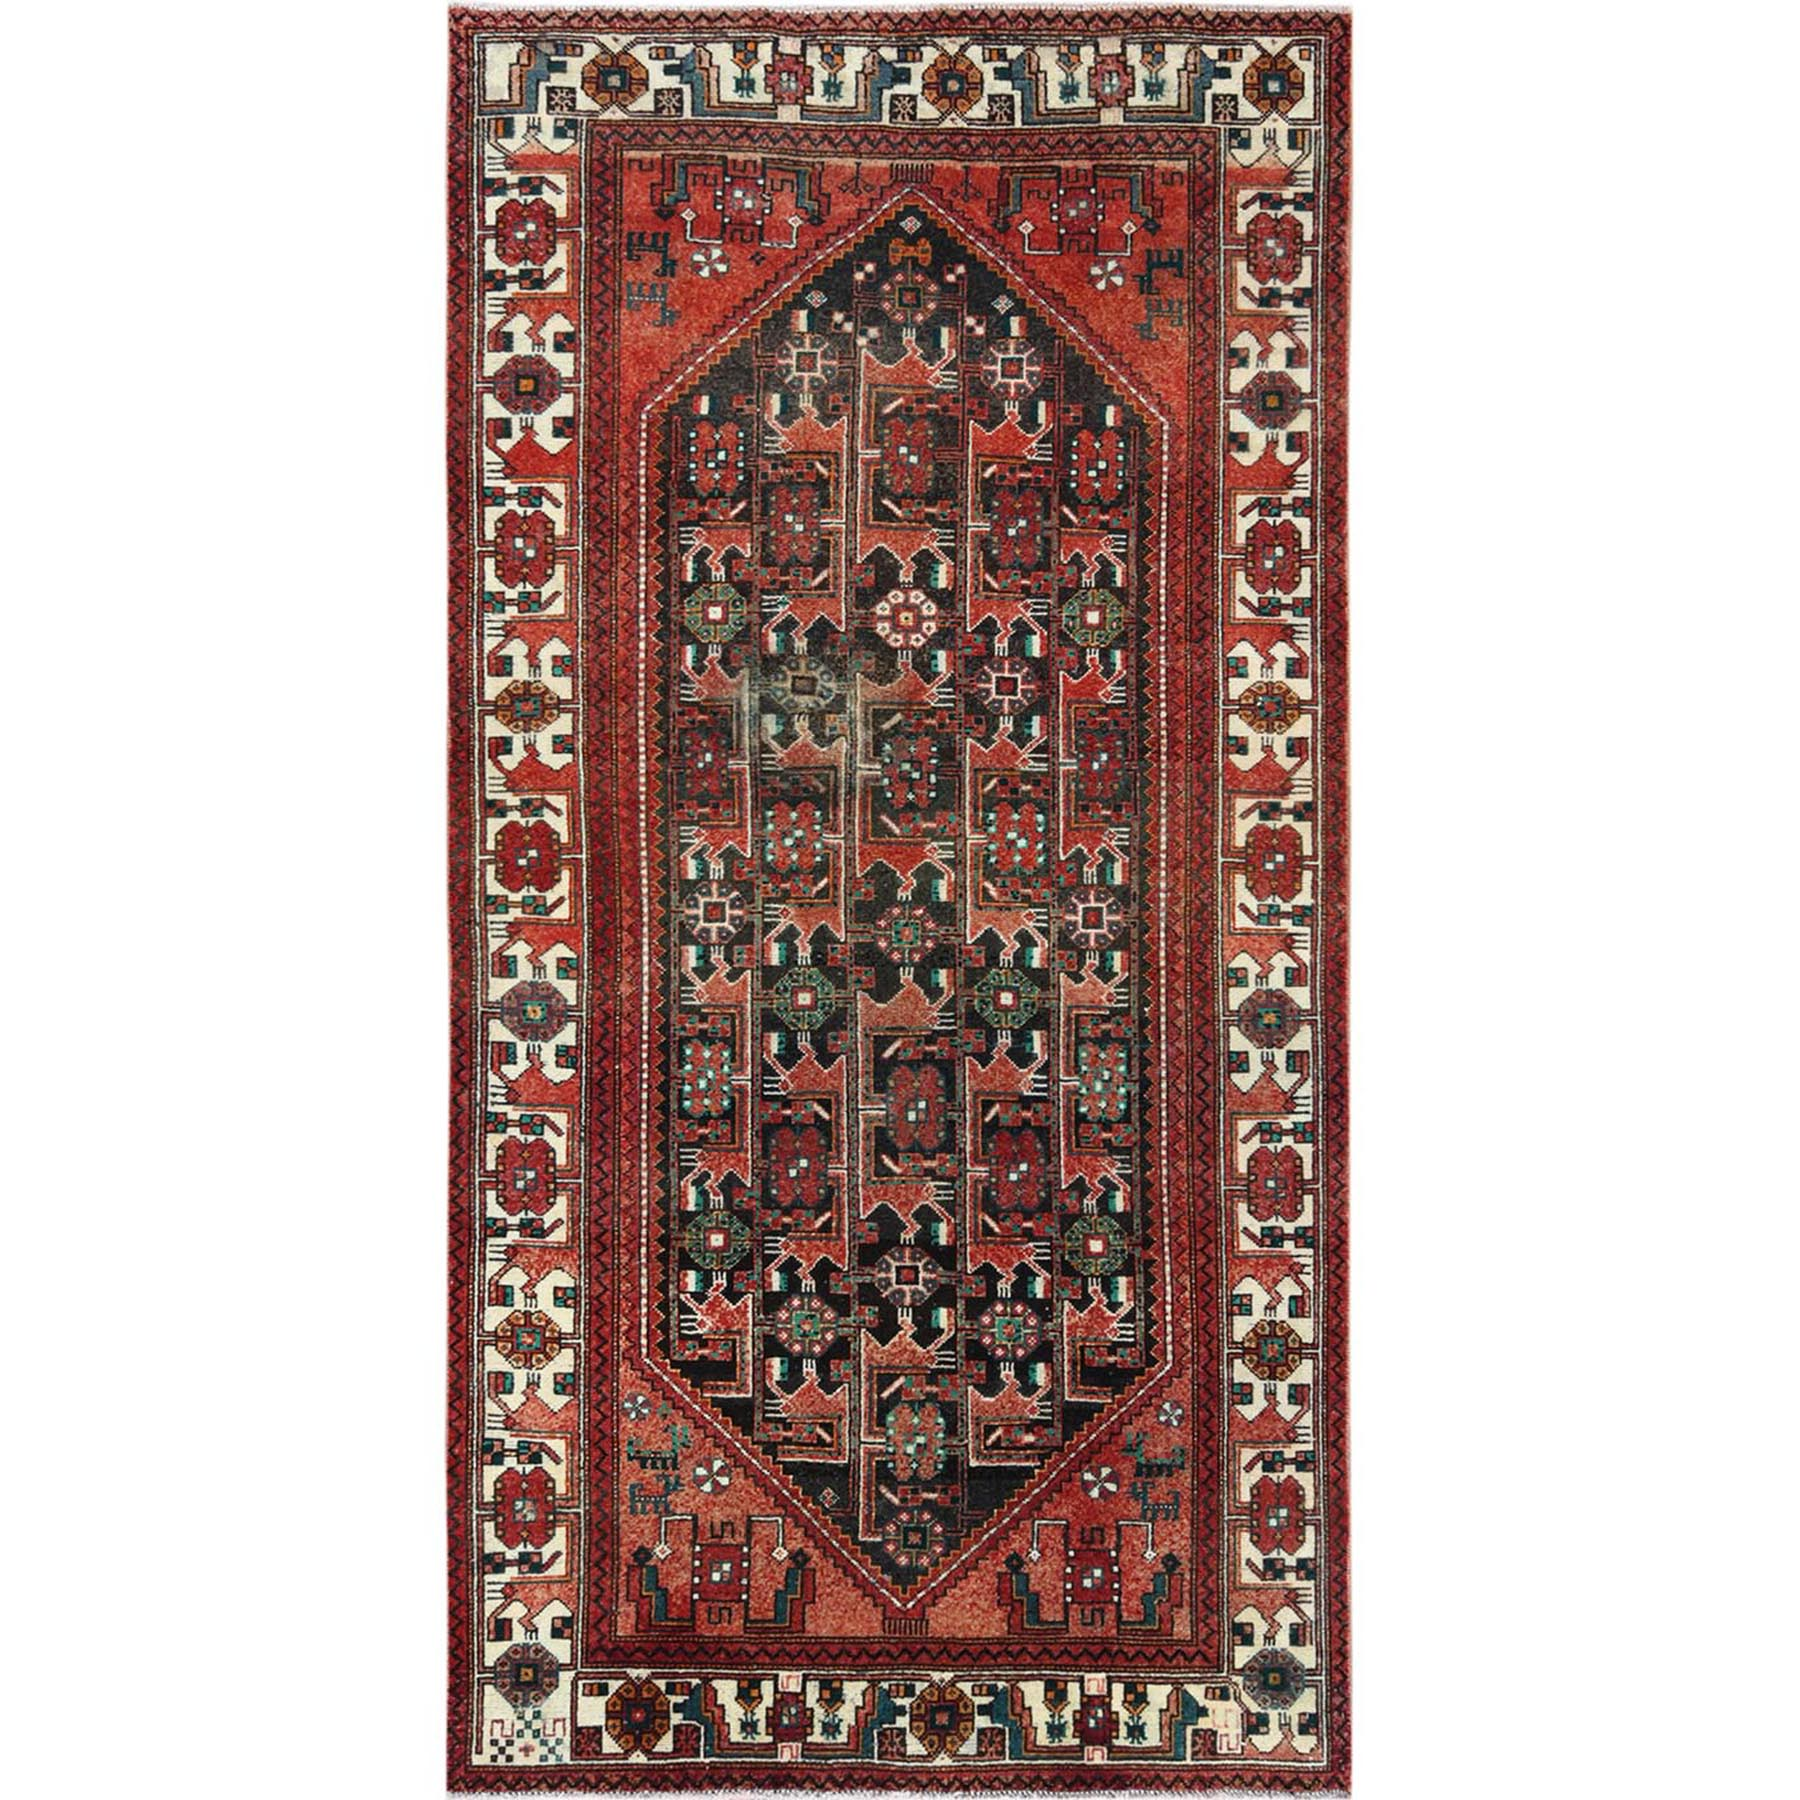 "5'x9'10"" Semi Antique Hand Woven Red Persian Hamadan Sheared Low Clean Organic Wool Shabby Chic Gallery Size Runner Oriental Rug"